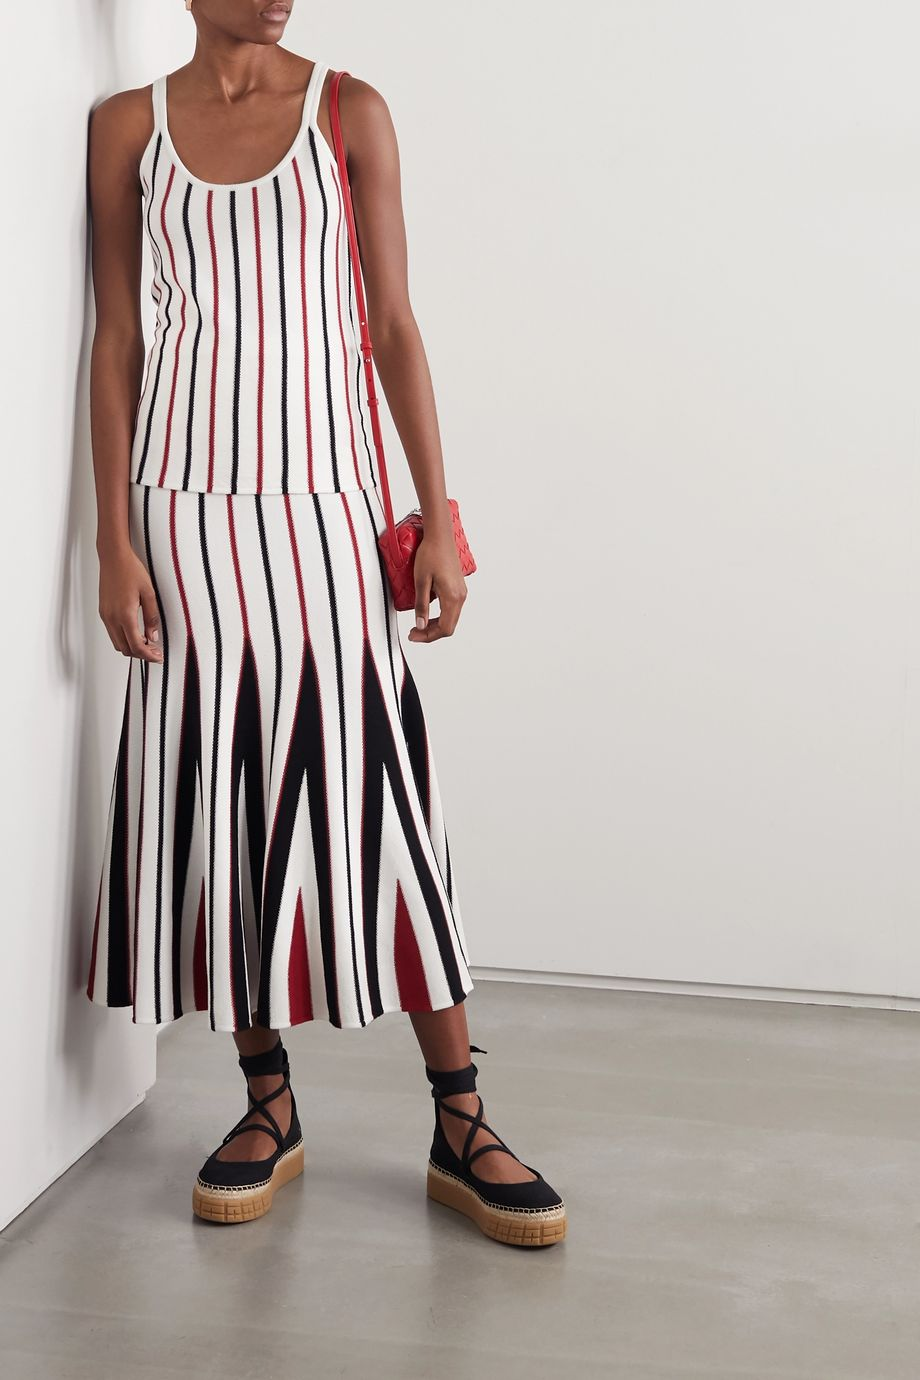 Gabriela Hearst Aegina striped wool midi skirt